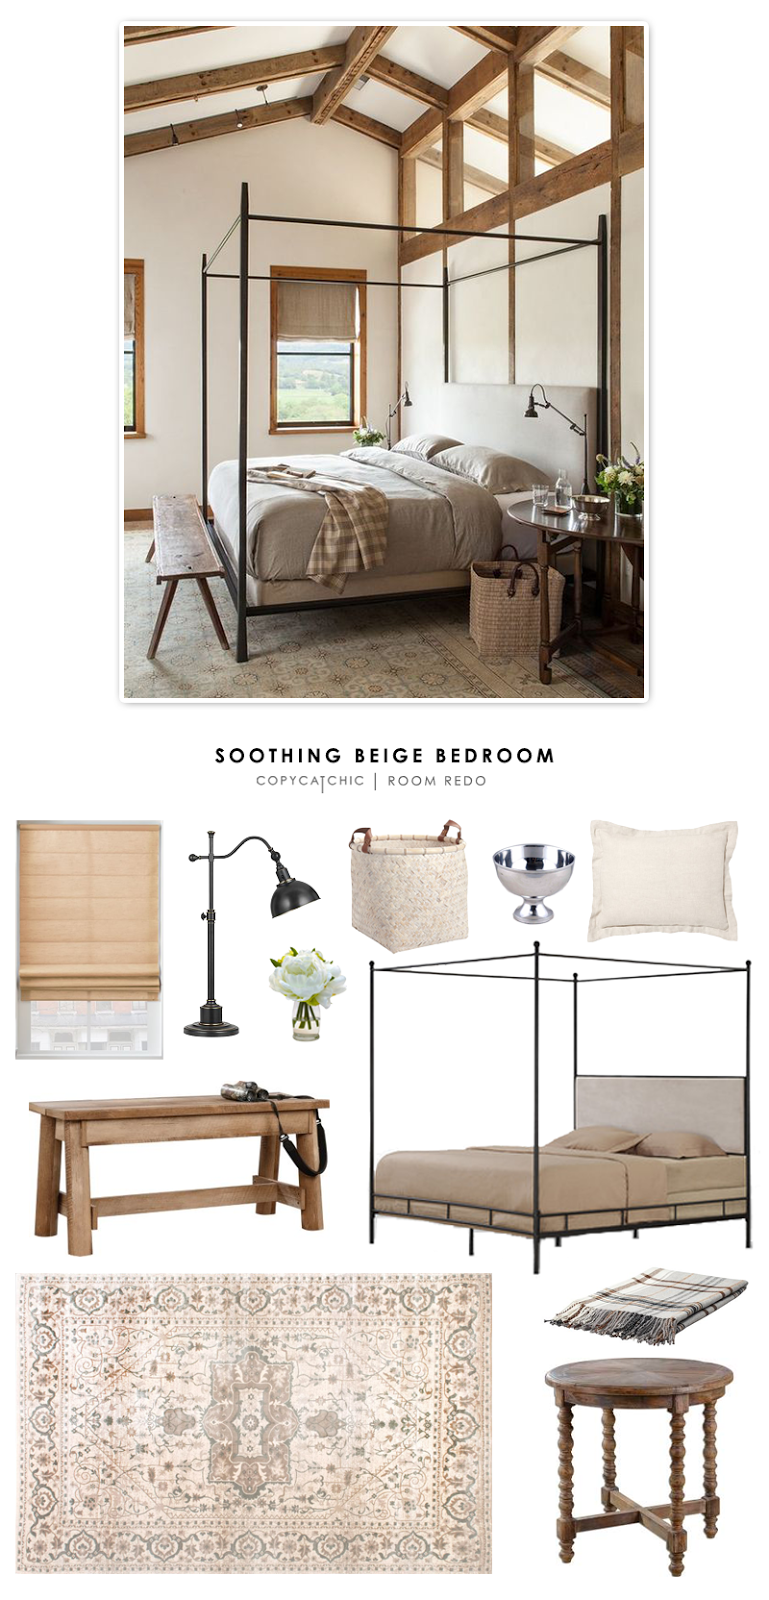 copy cat chic room redo | soothing beige bedroom - copycatchic